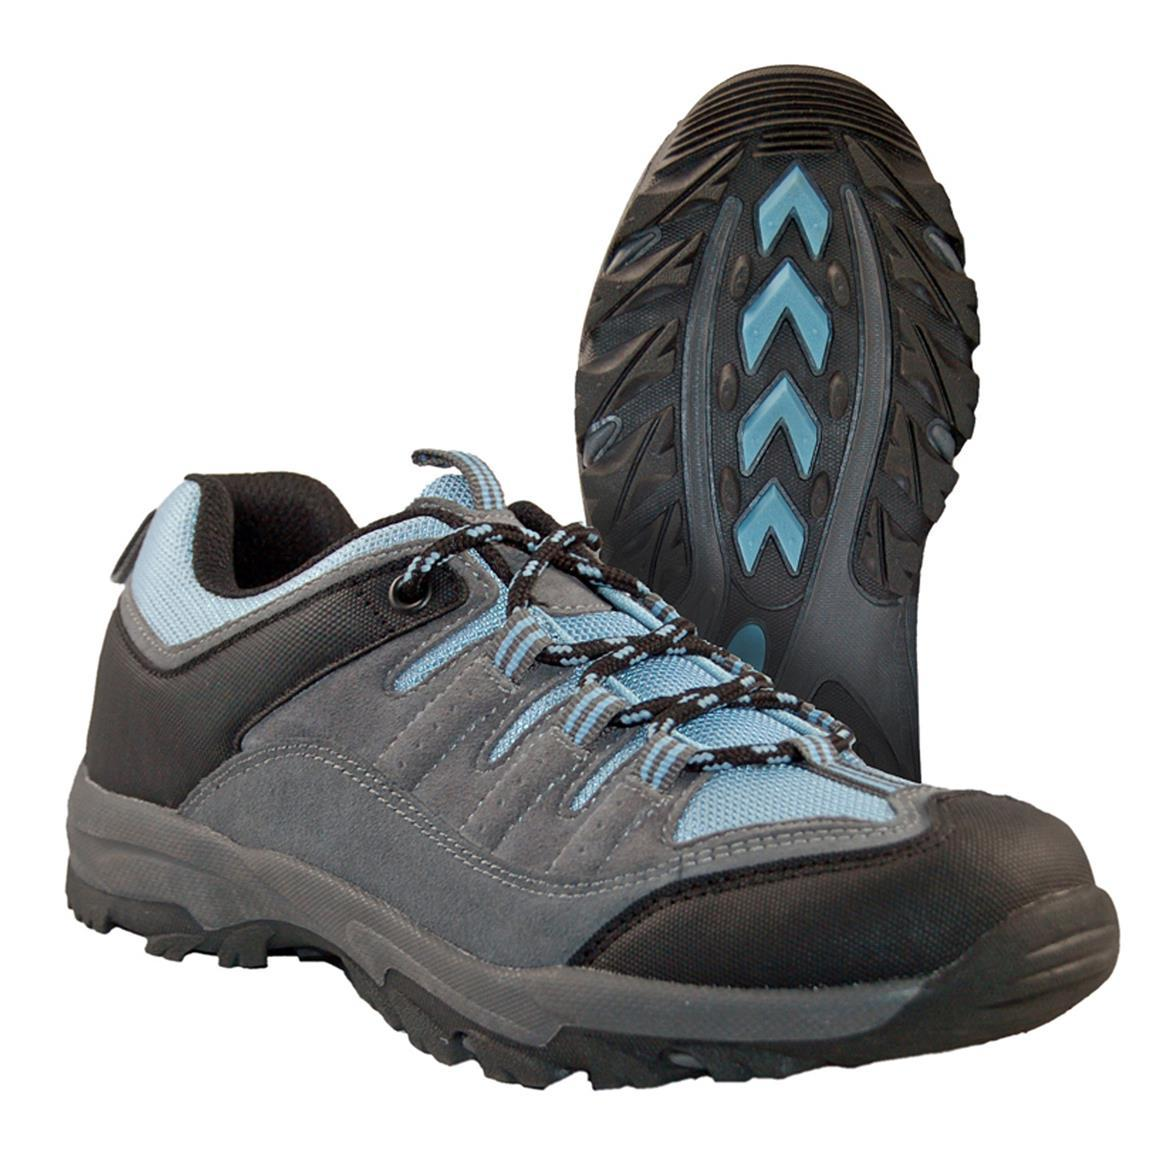 Itasca BRIDGEPORT Low Womens Grey Blue Lace up Hiking Boots Shoes